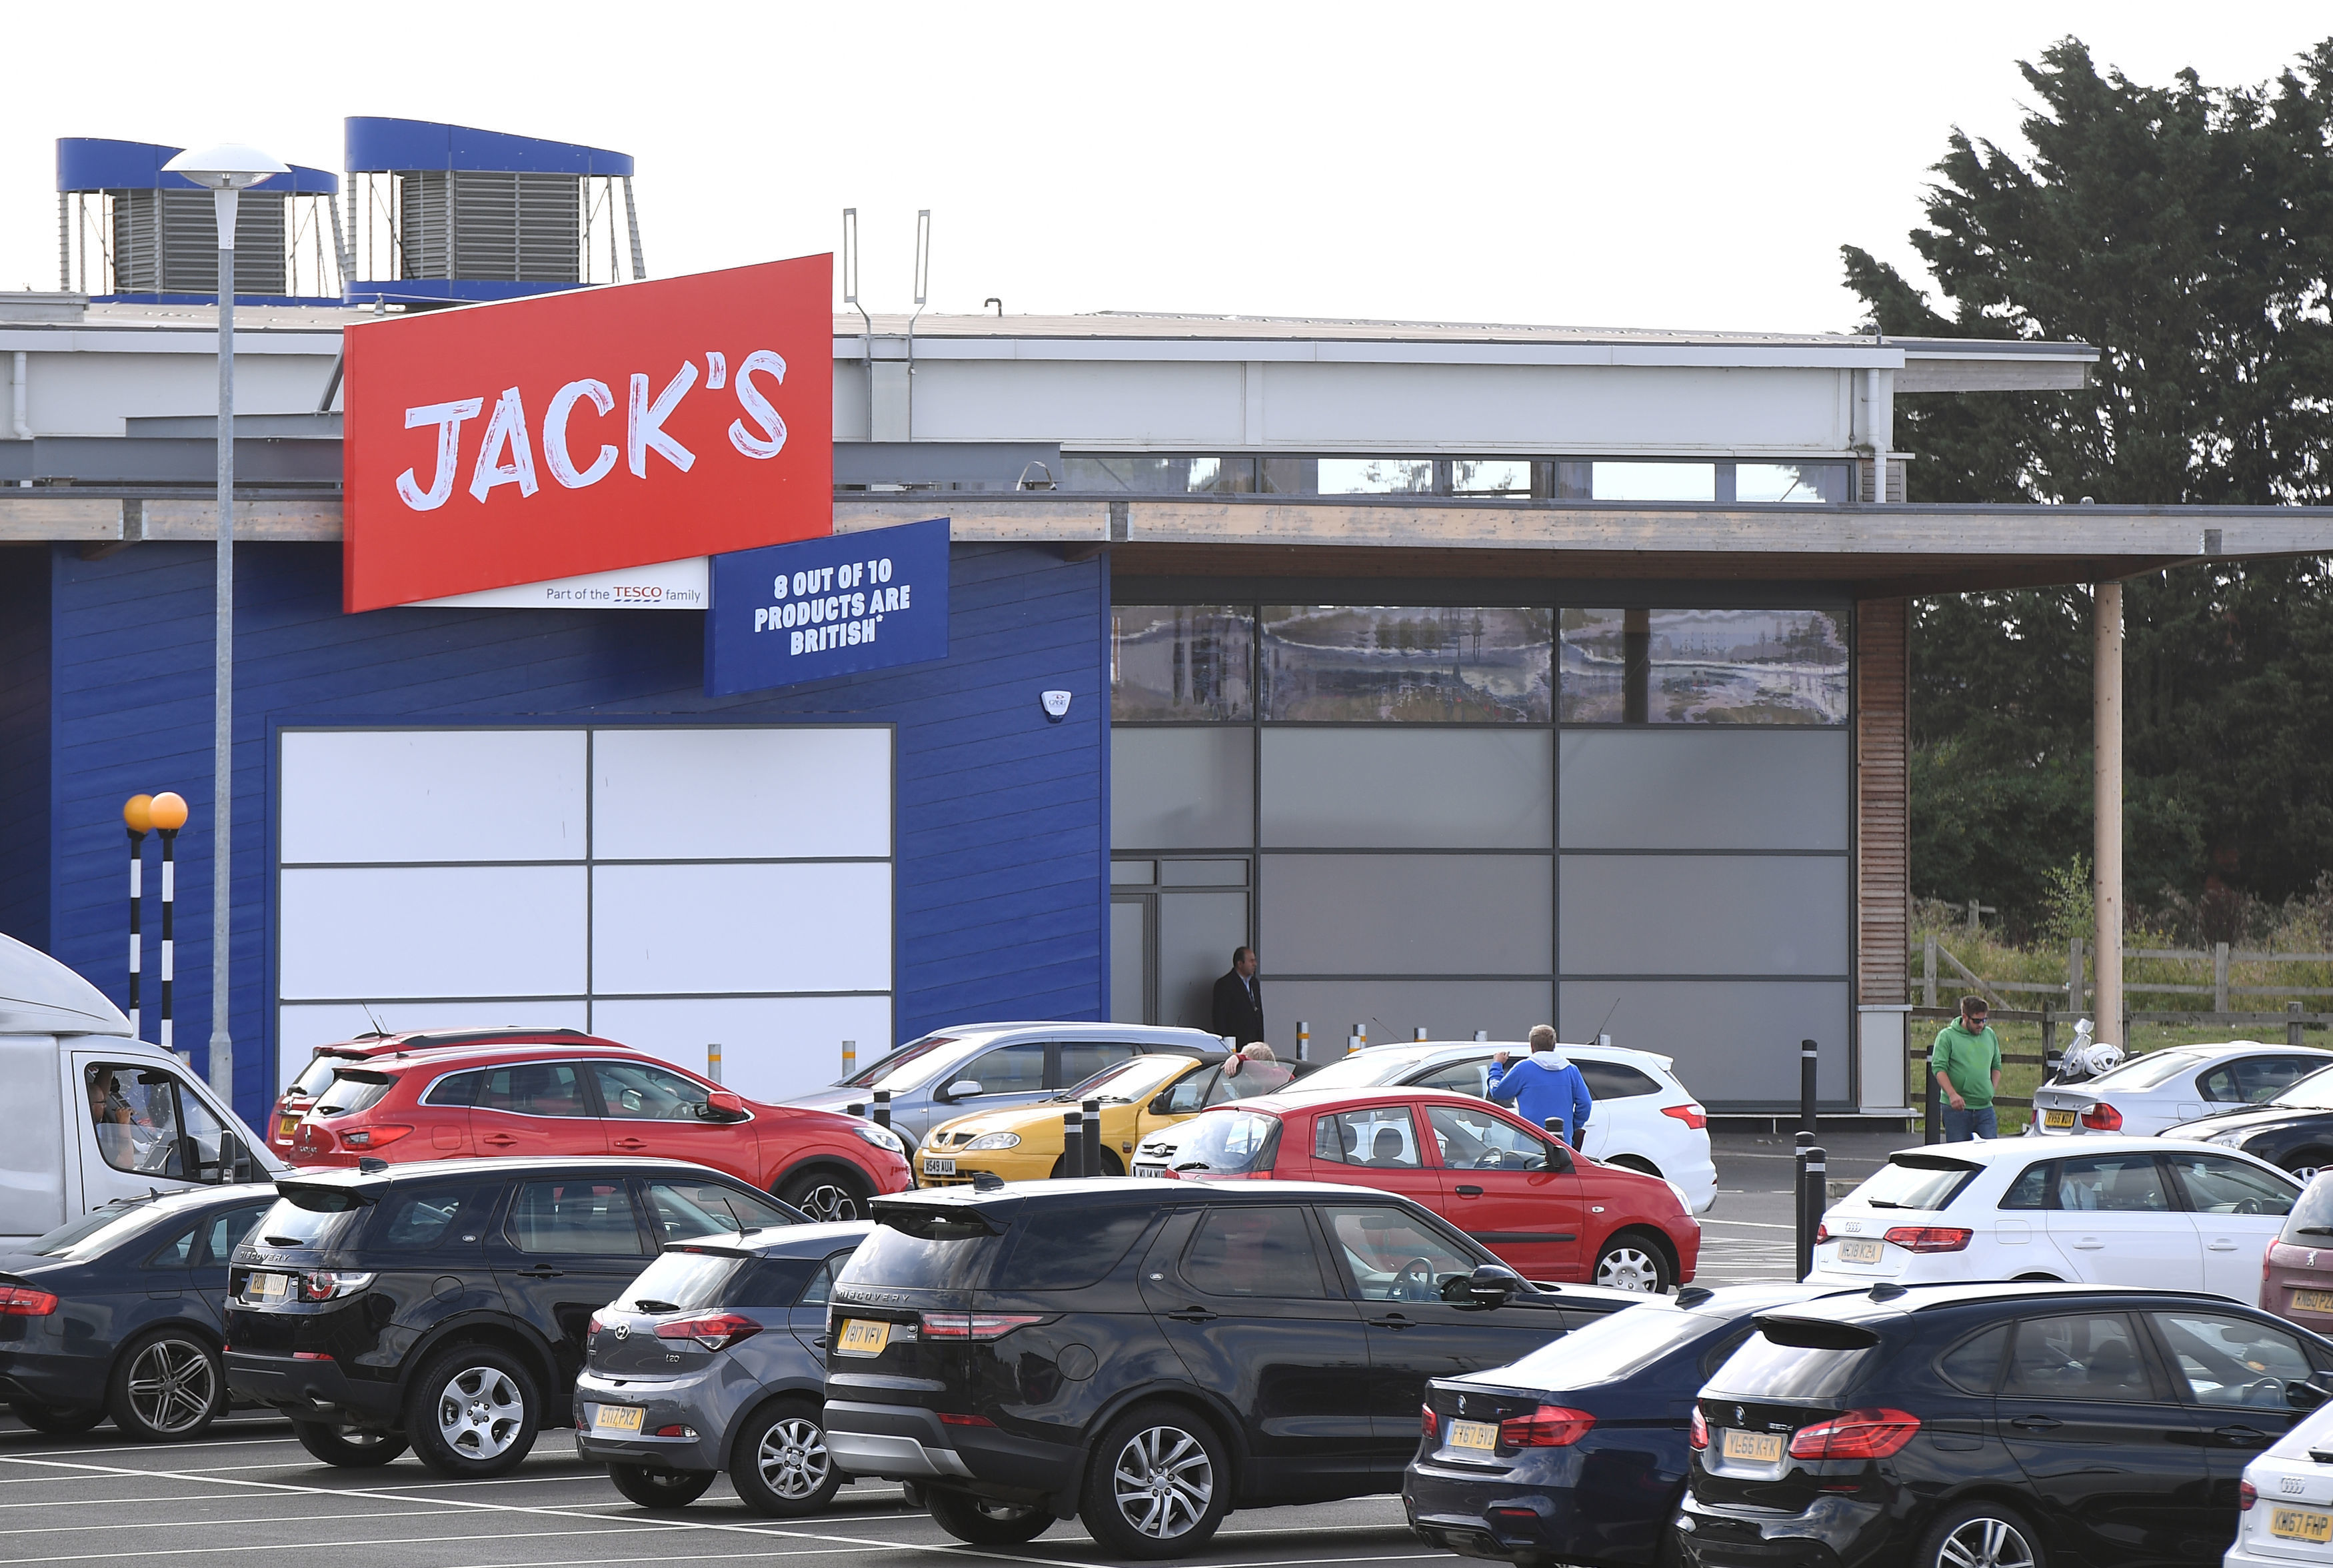 Tesco's new budget store 'Jack's' inspired by Jewish founder